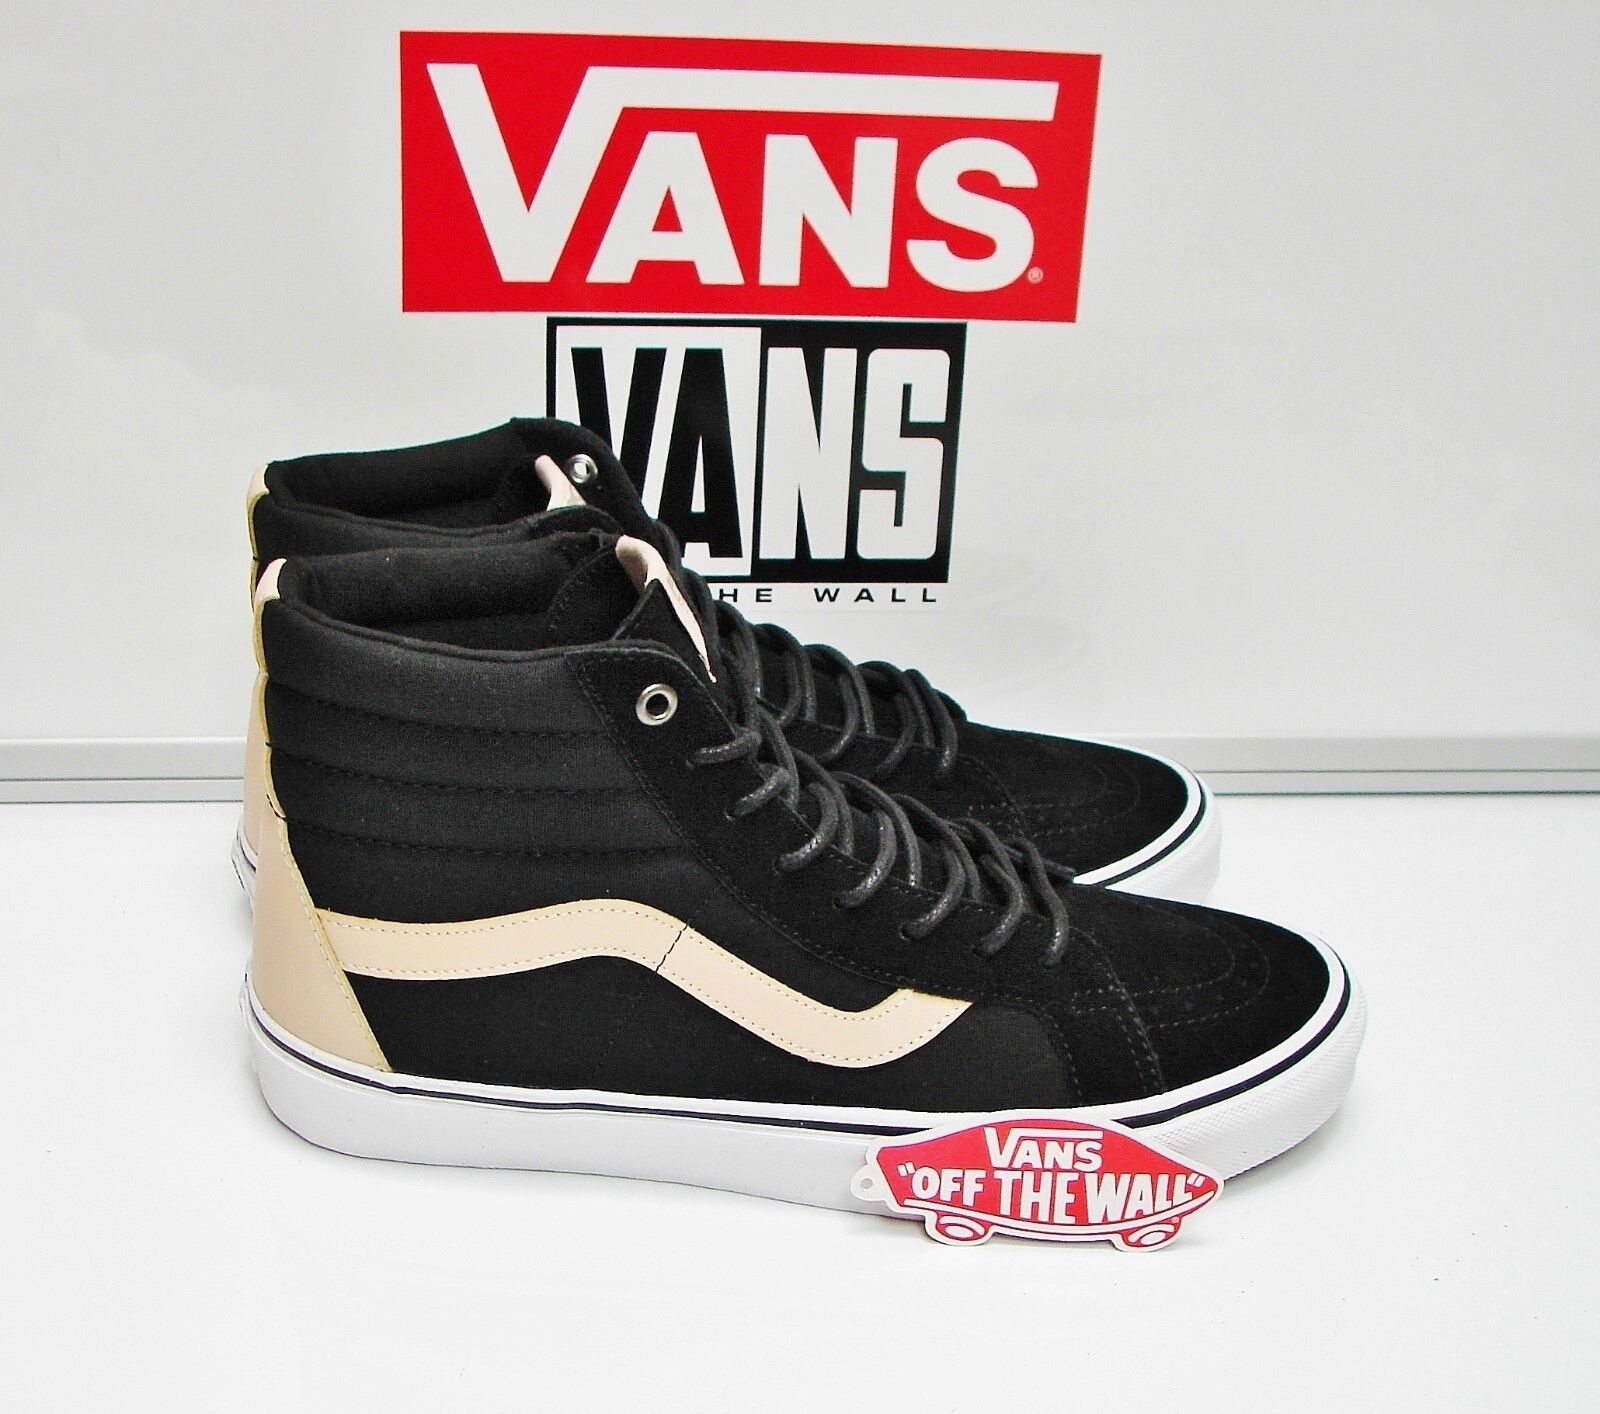 Vans Sk8 Hi Reissue Veggie Tan Black True White VN0A2XSBMN7 Men's Size  9.5